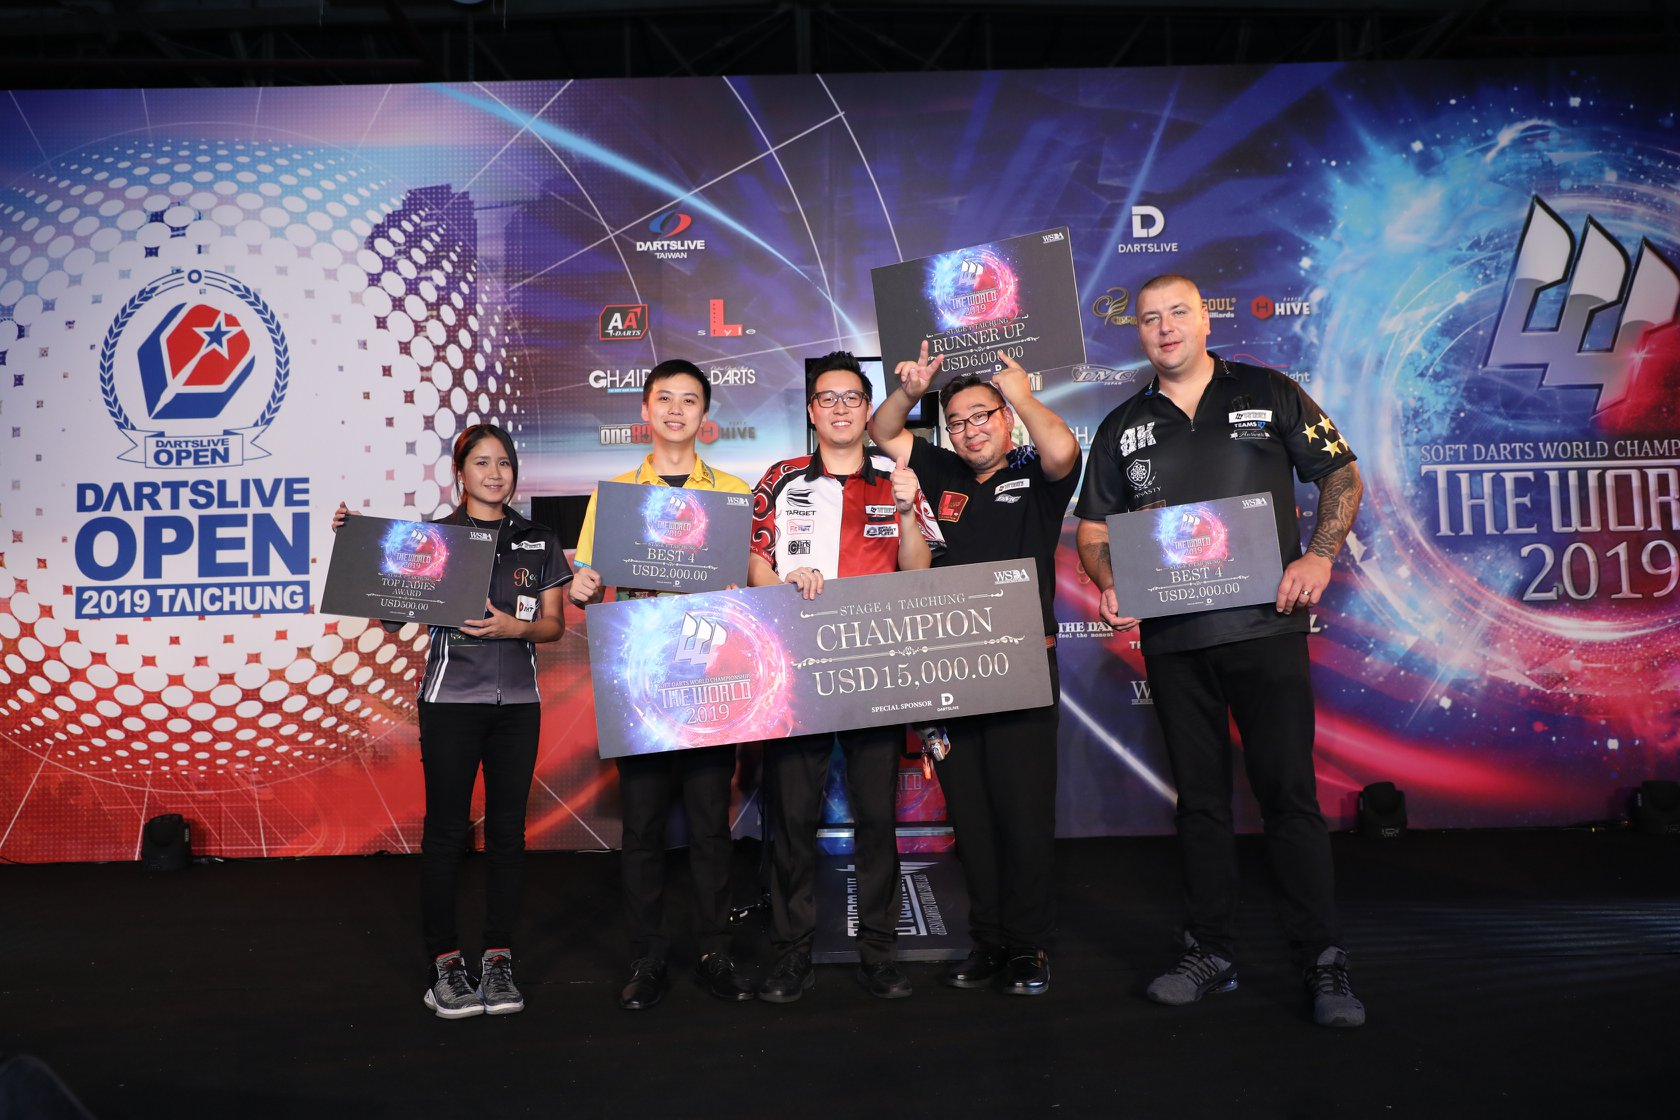 【THE WORLD 2019】STAGE 4 TAICHUNG